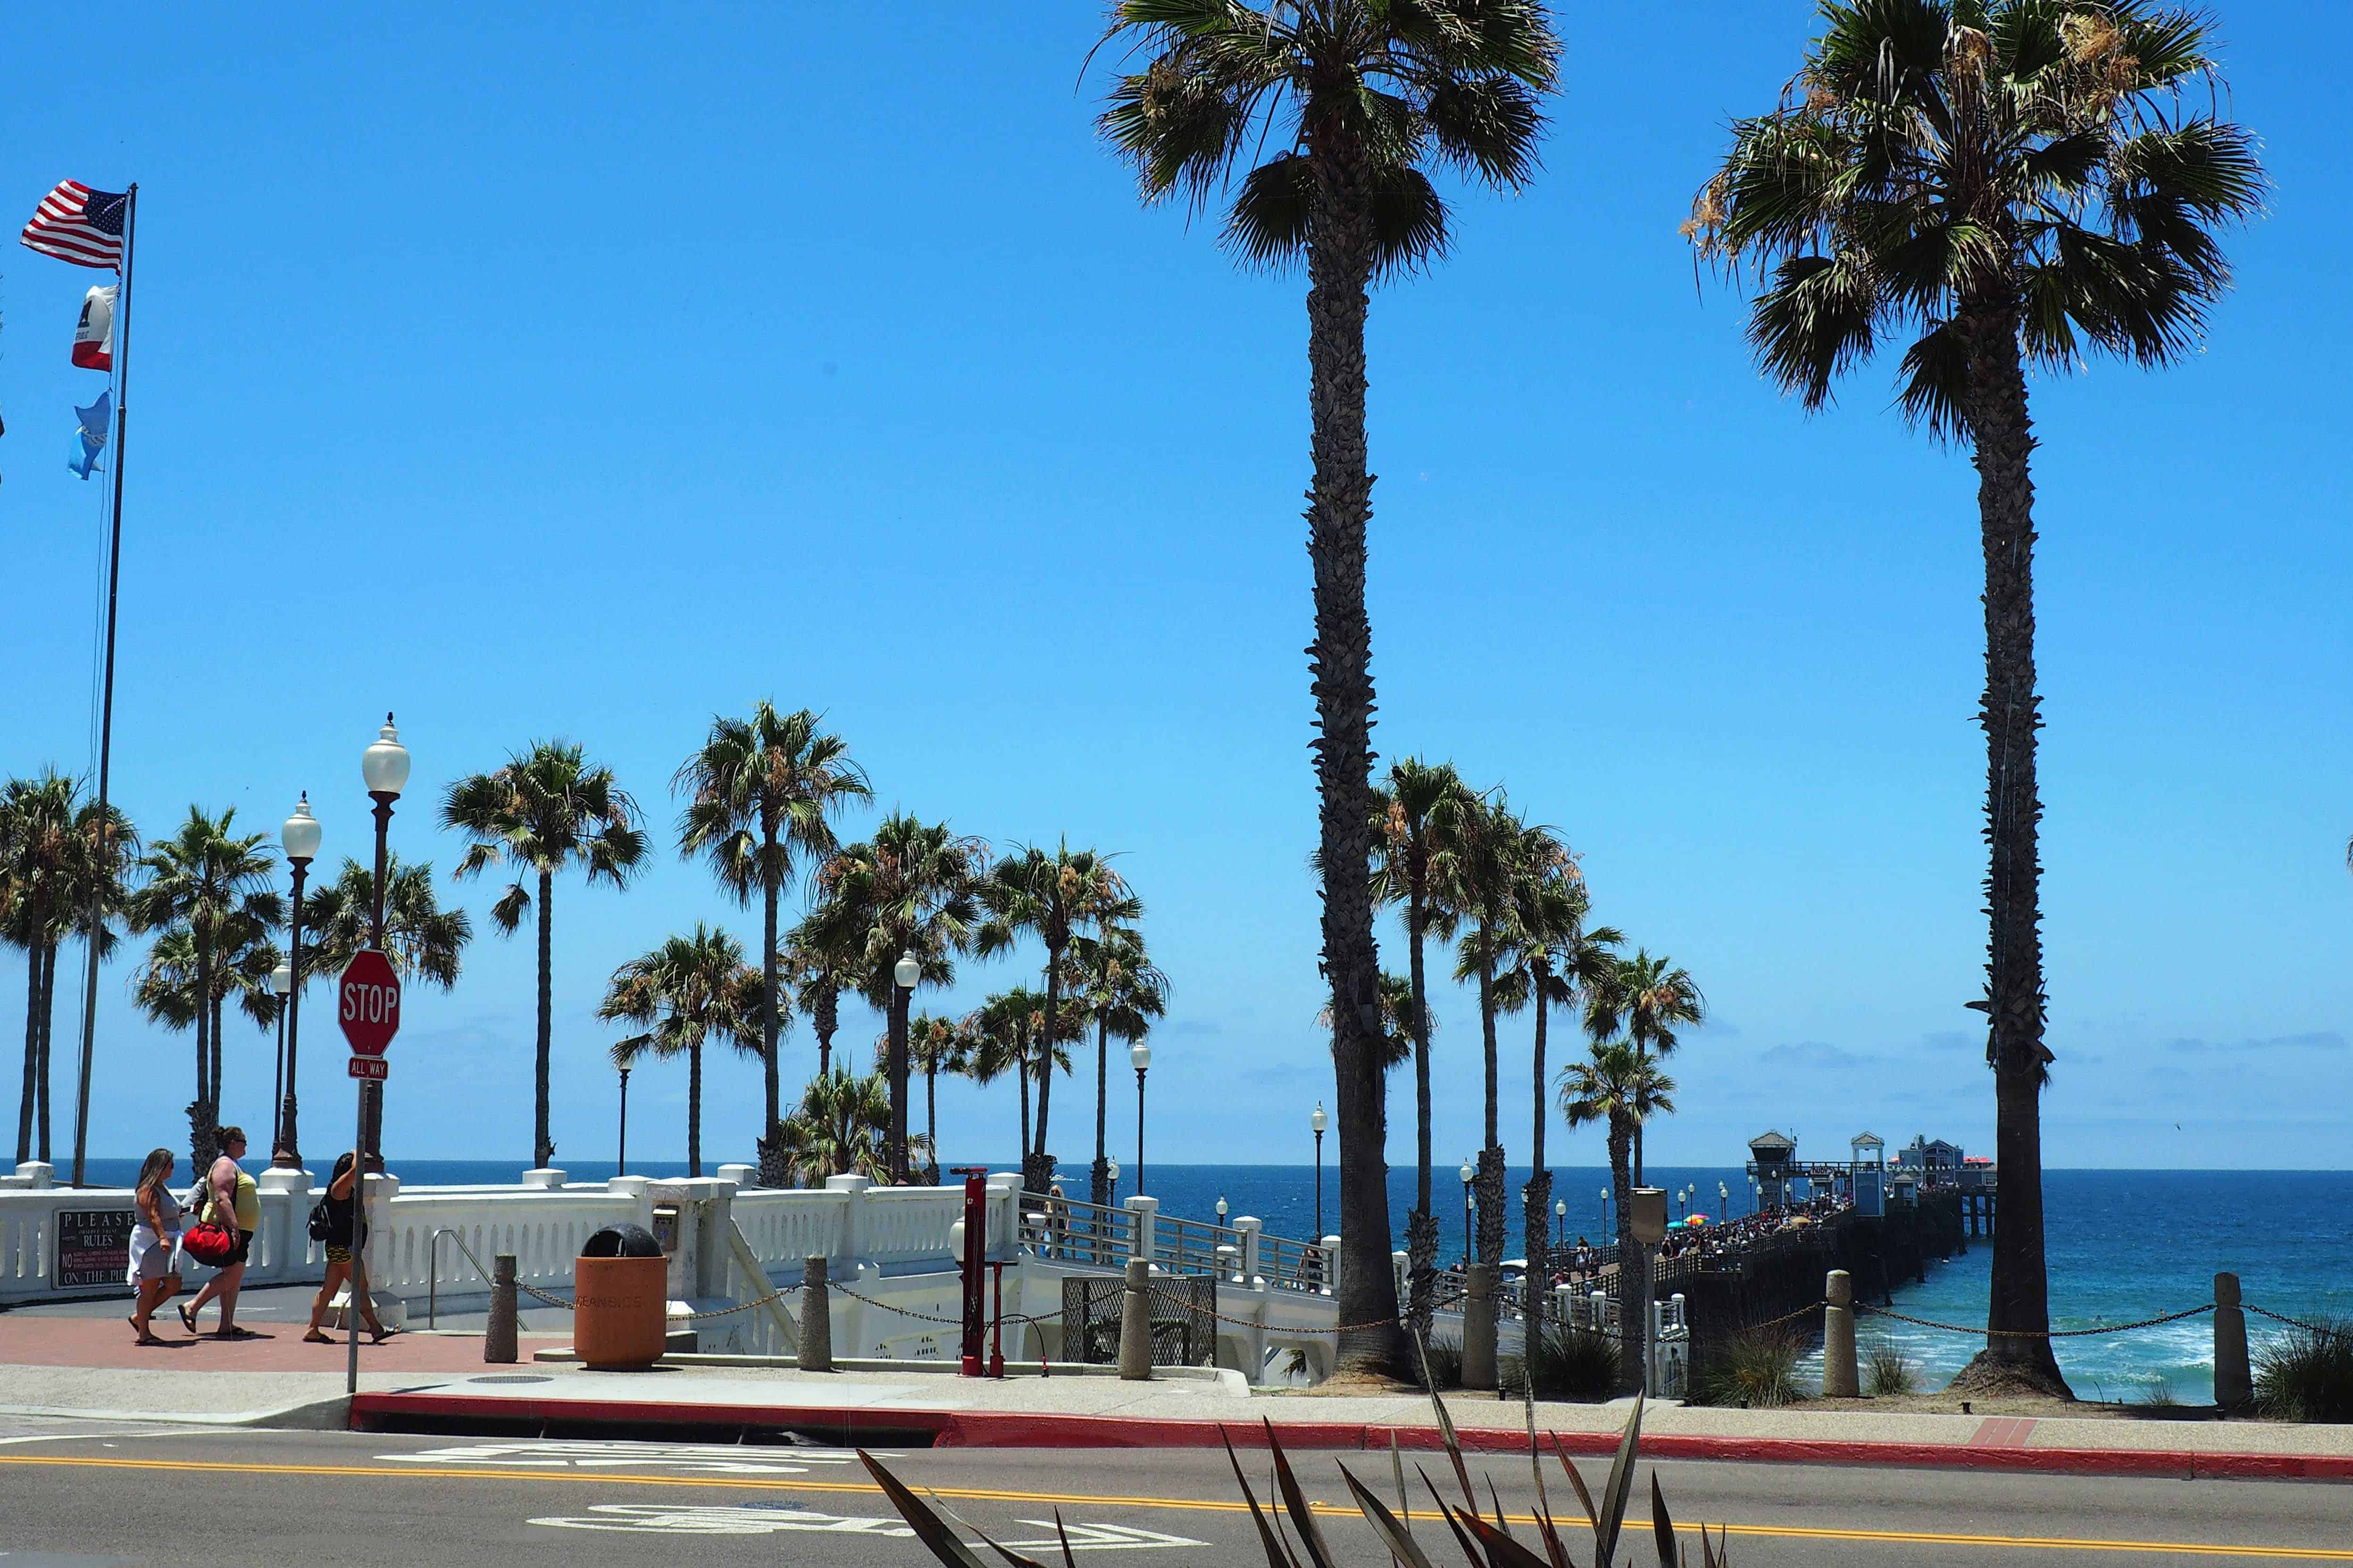 333 Pacific Oceanside Pier View